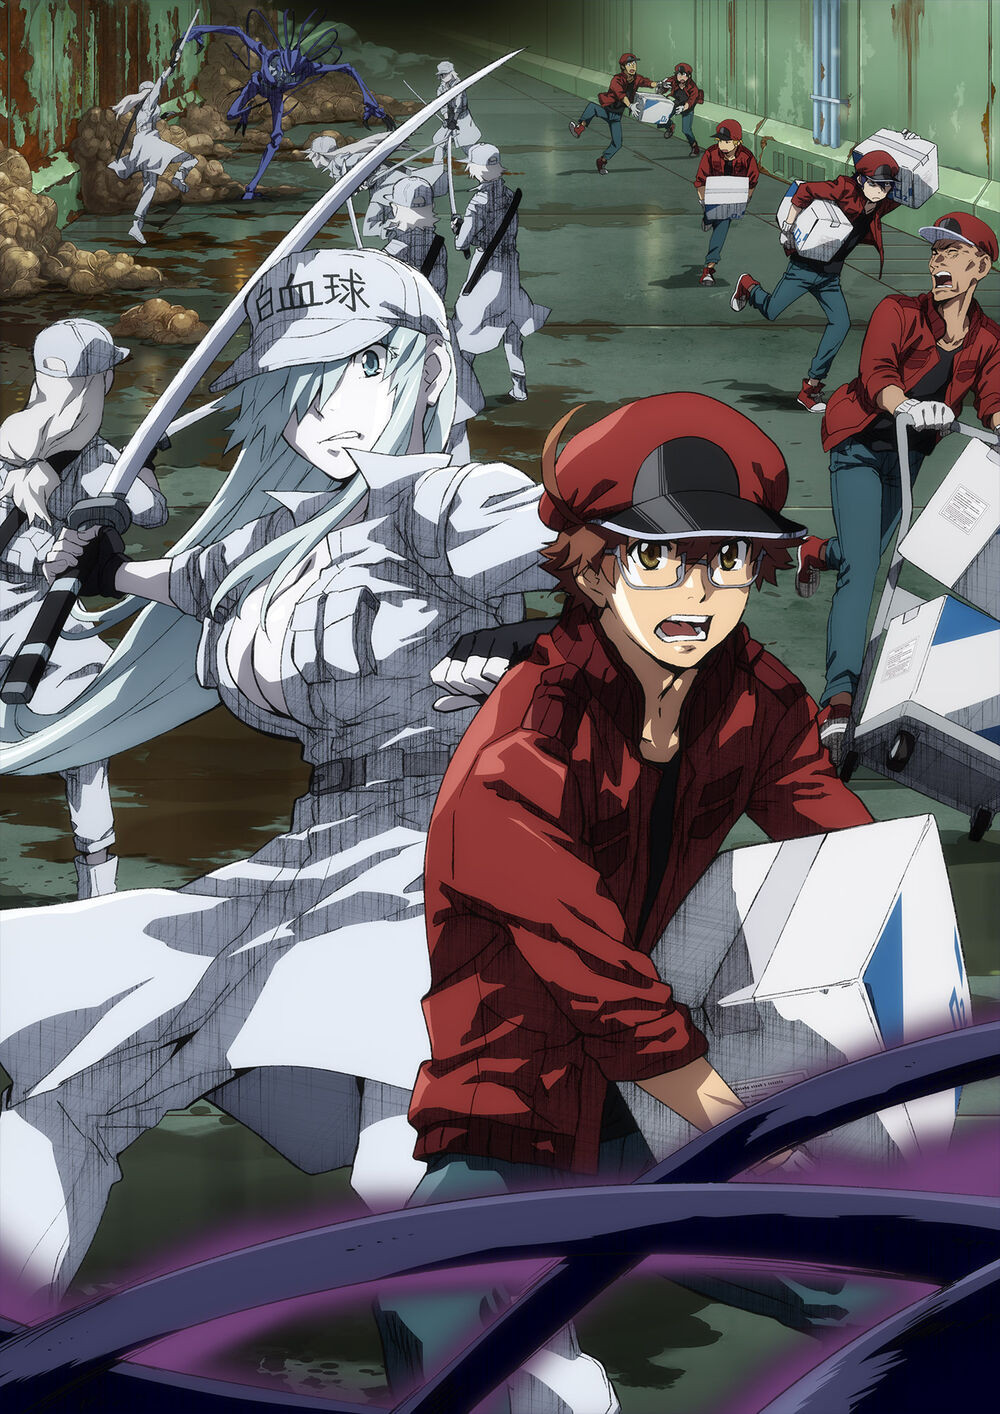 Red Blood Cell AA2153 and White Blood Cell U-1196 off with their tasks